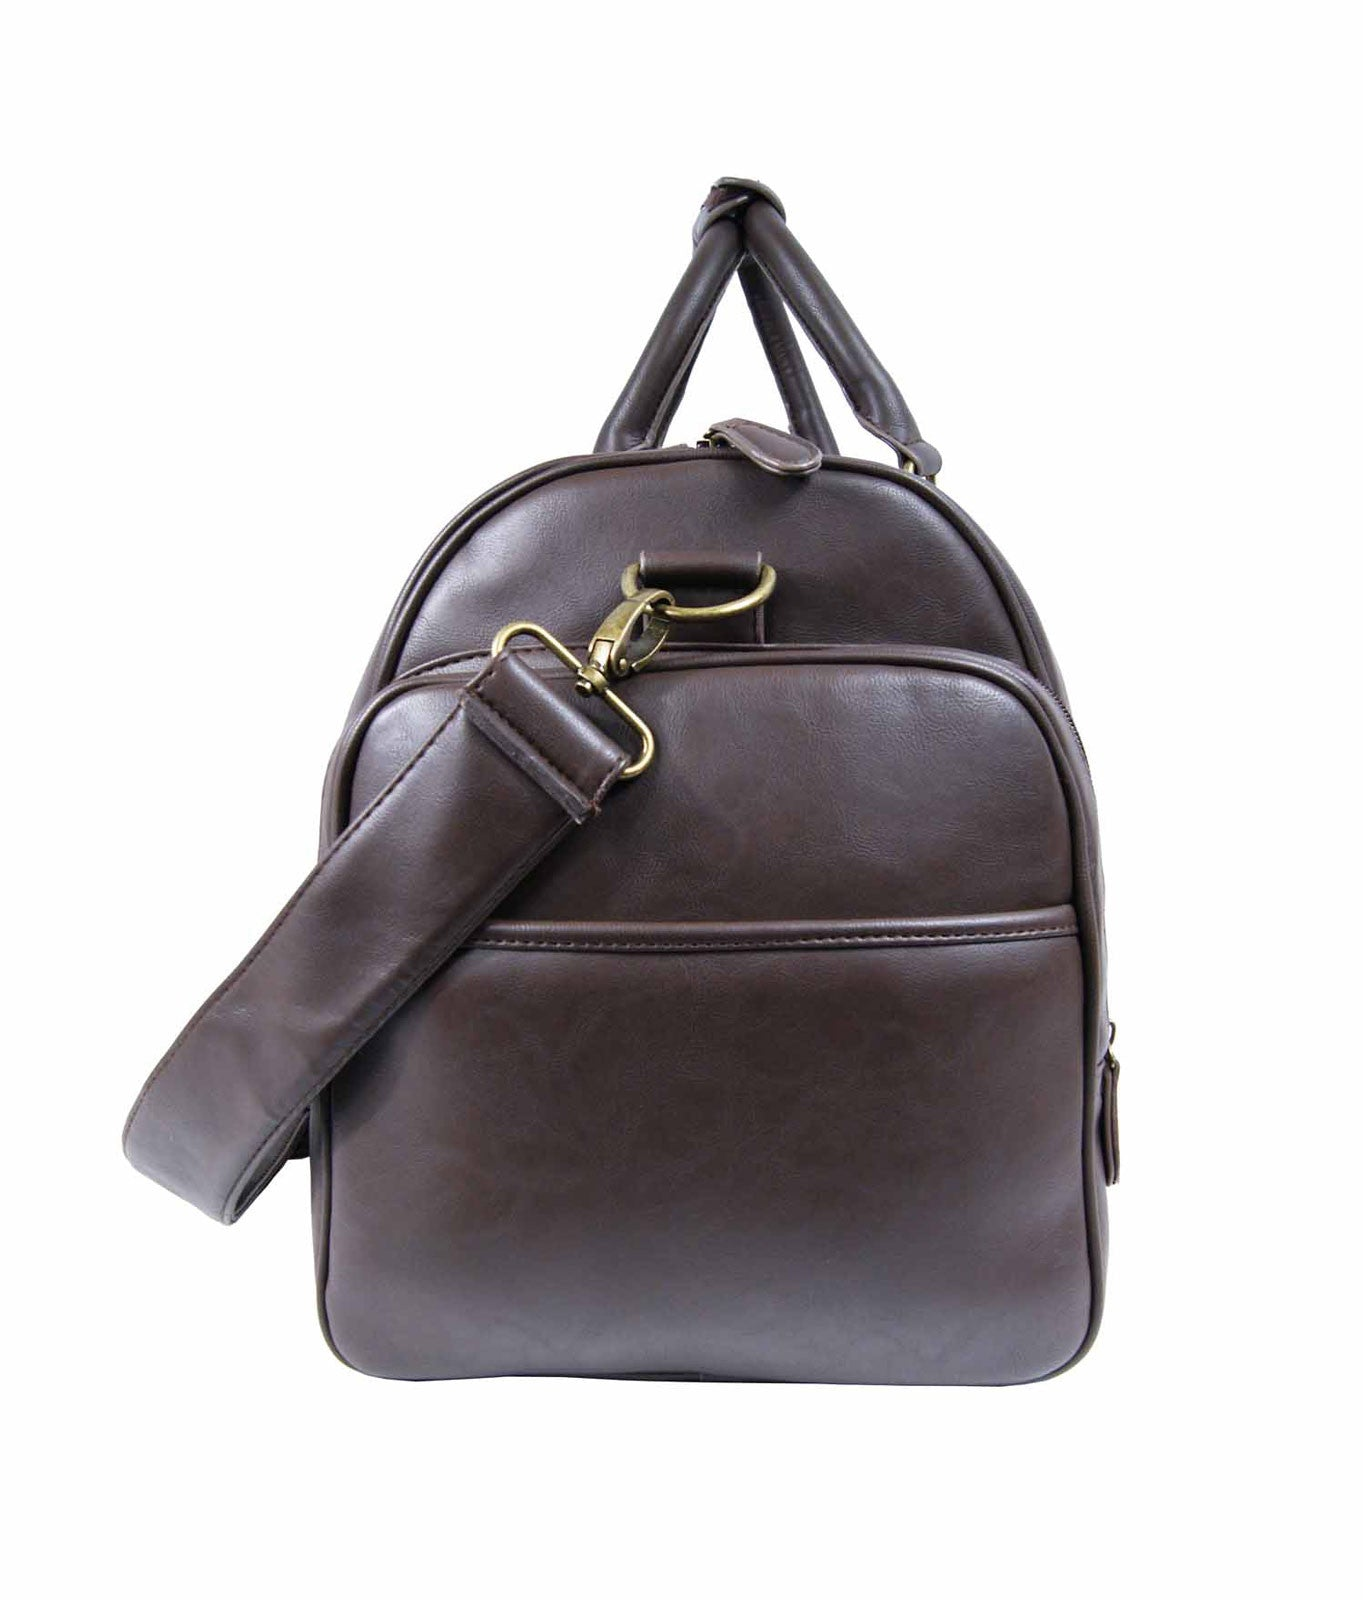 Pu leather large holdall duffel bag Roamlite RL751B Brown end view